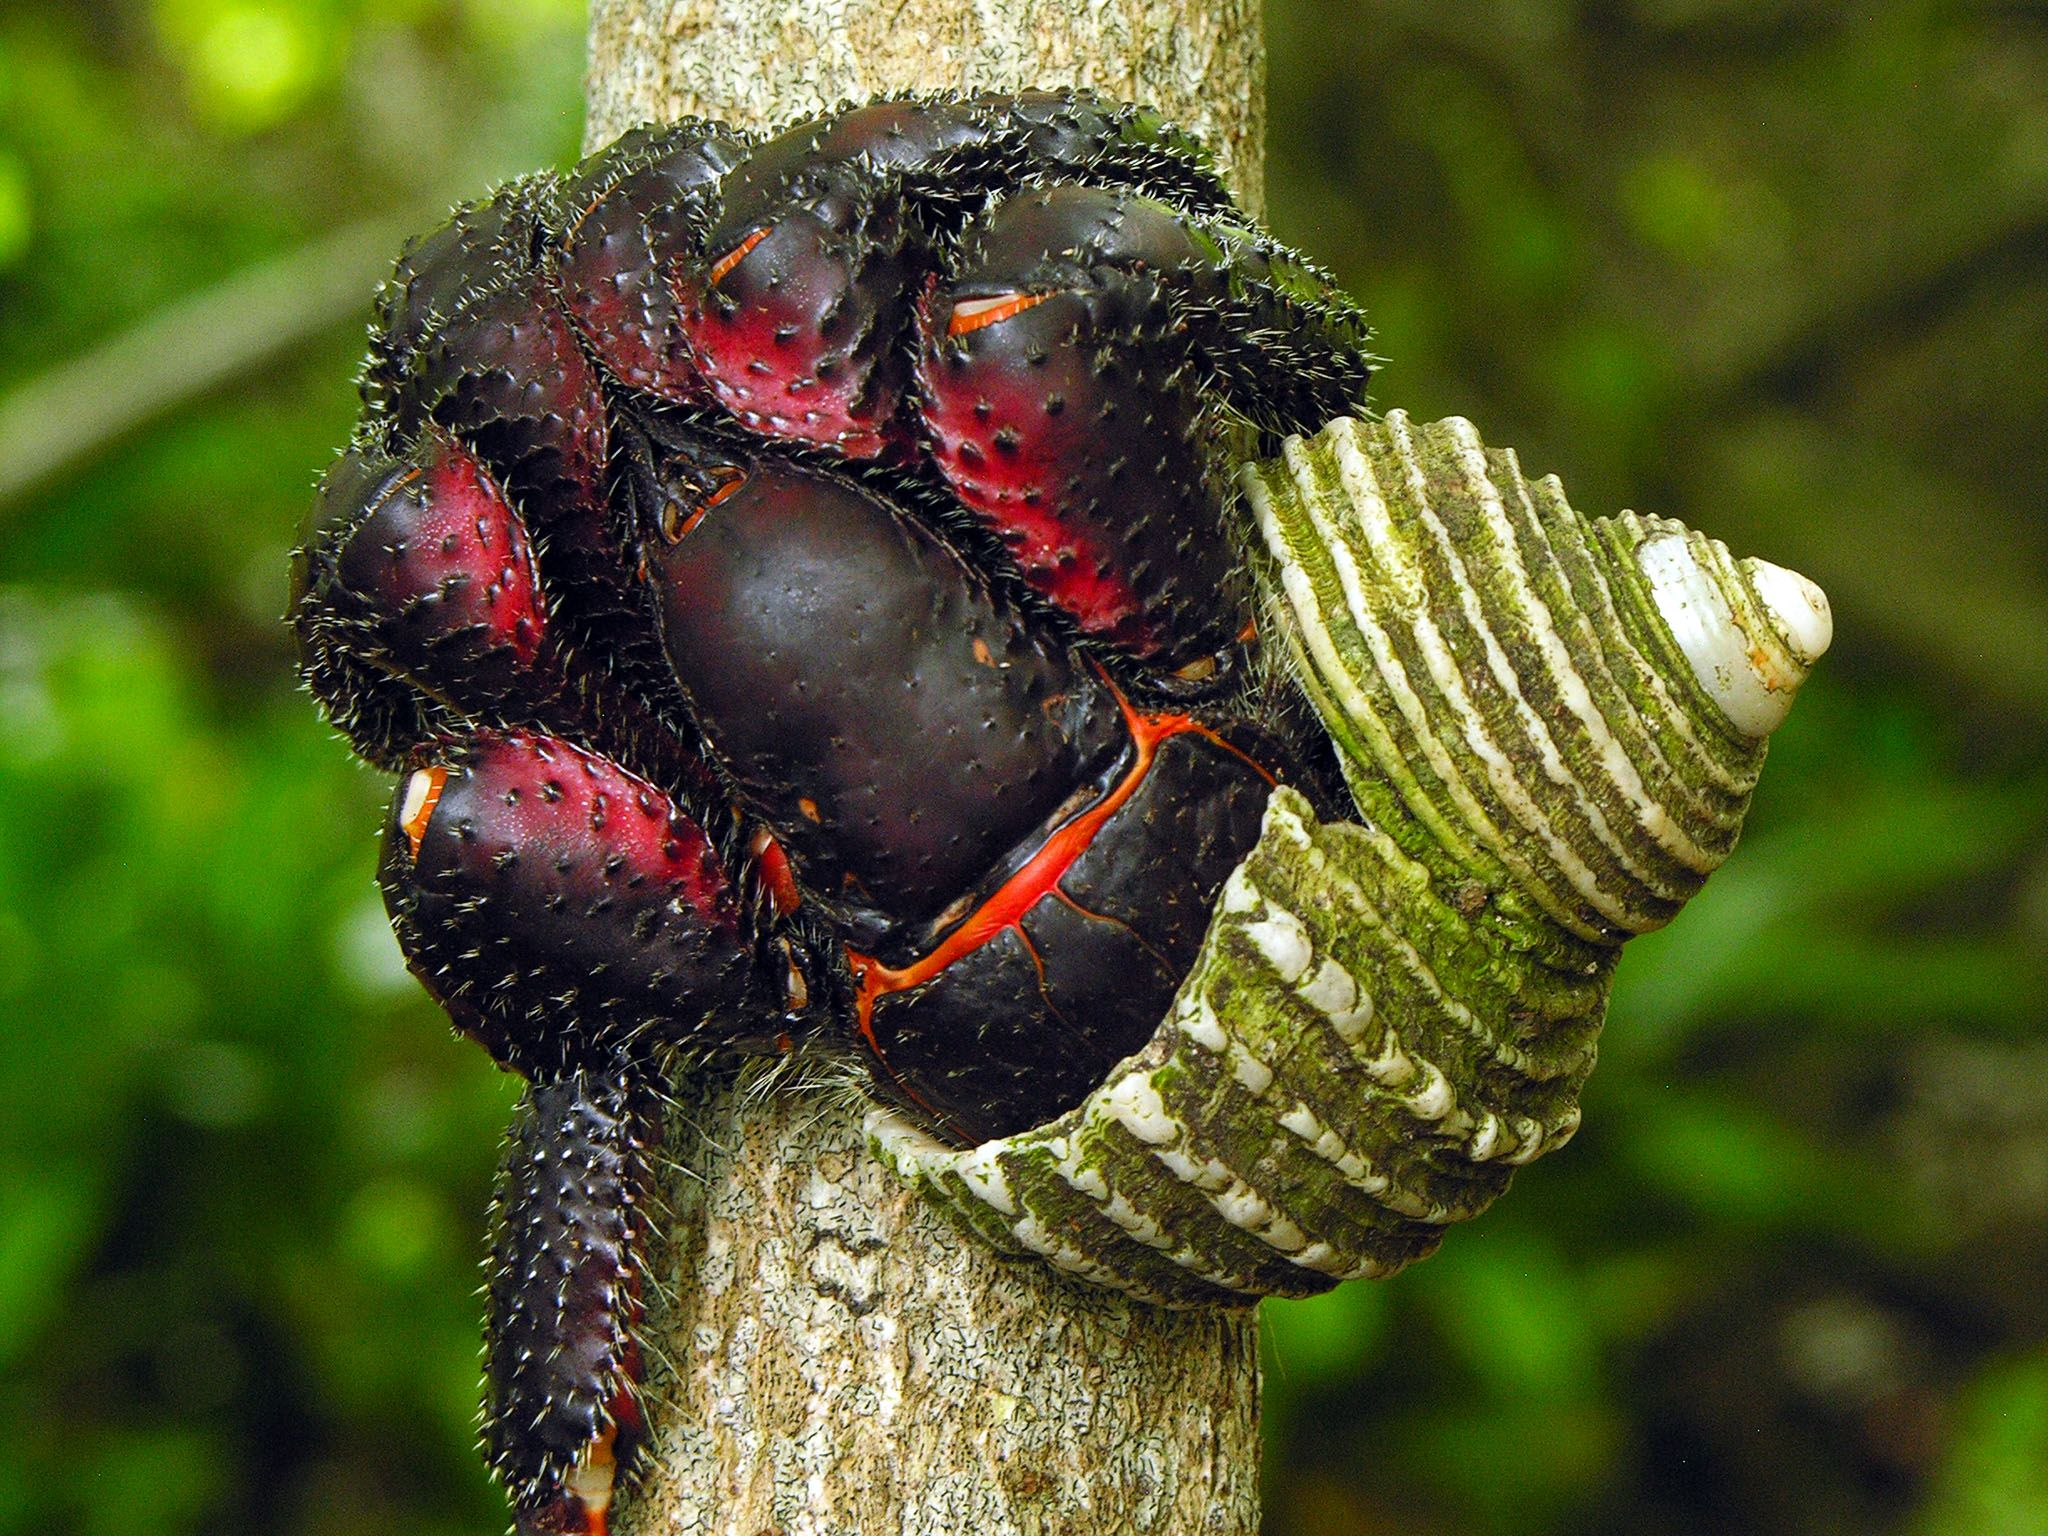 Henderson Island, Pitcairn Islands: A large, dark Hermit Crab climbs a tree. This image is from... [Photo of the day - 十月 2015]